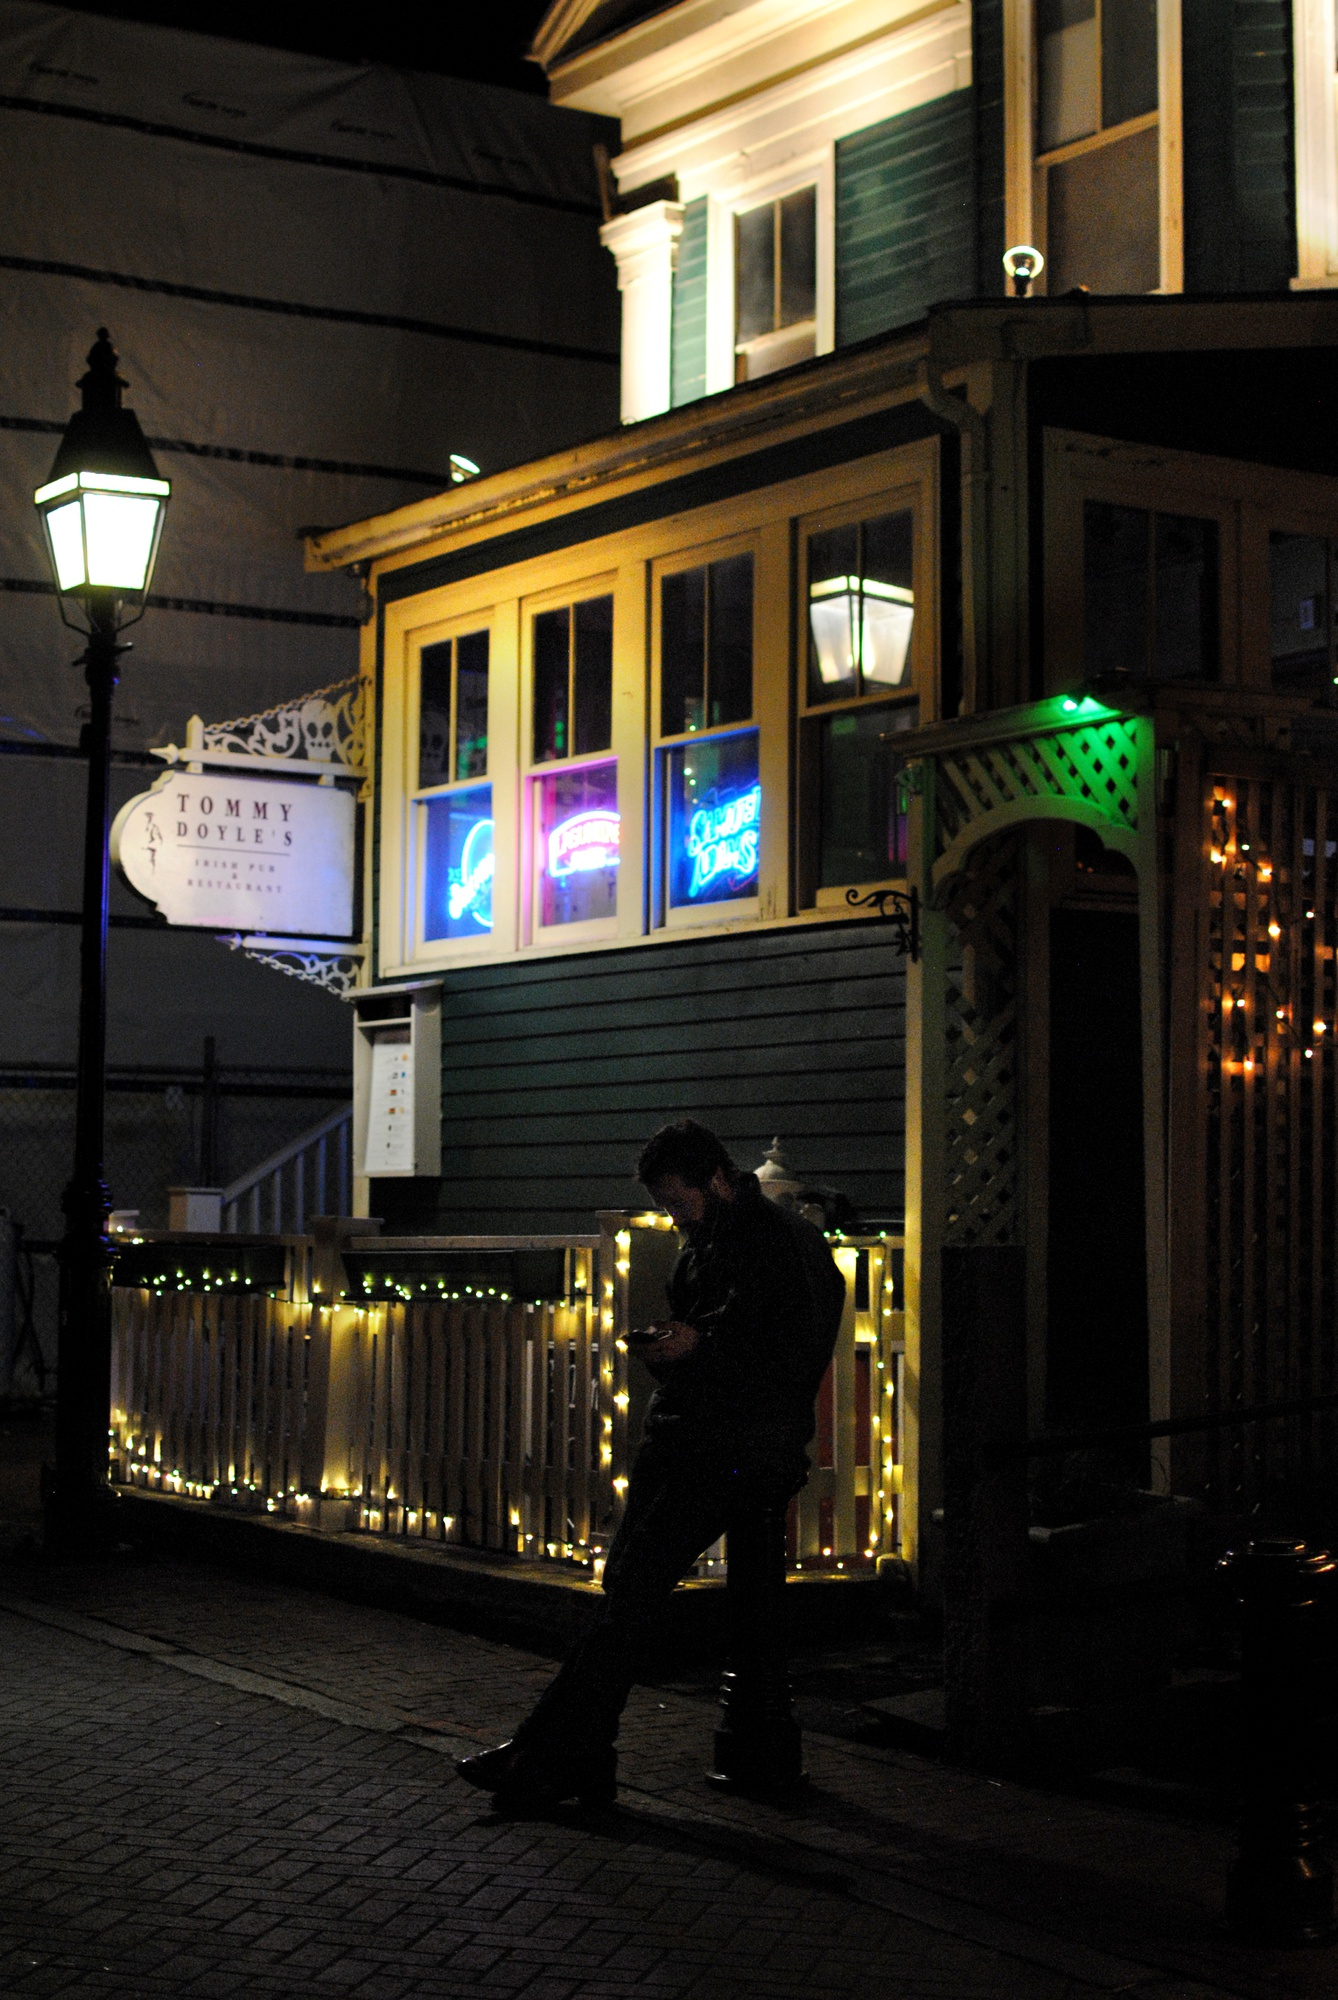 A man stands outside Harvard Square's classic pub, Tommy Doyle's, on Sunday night. The central location of Tommy Doyle's to Harvard's campus has made it a popular spot for students, but the business will close by the end of December.